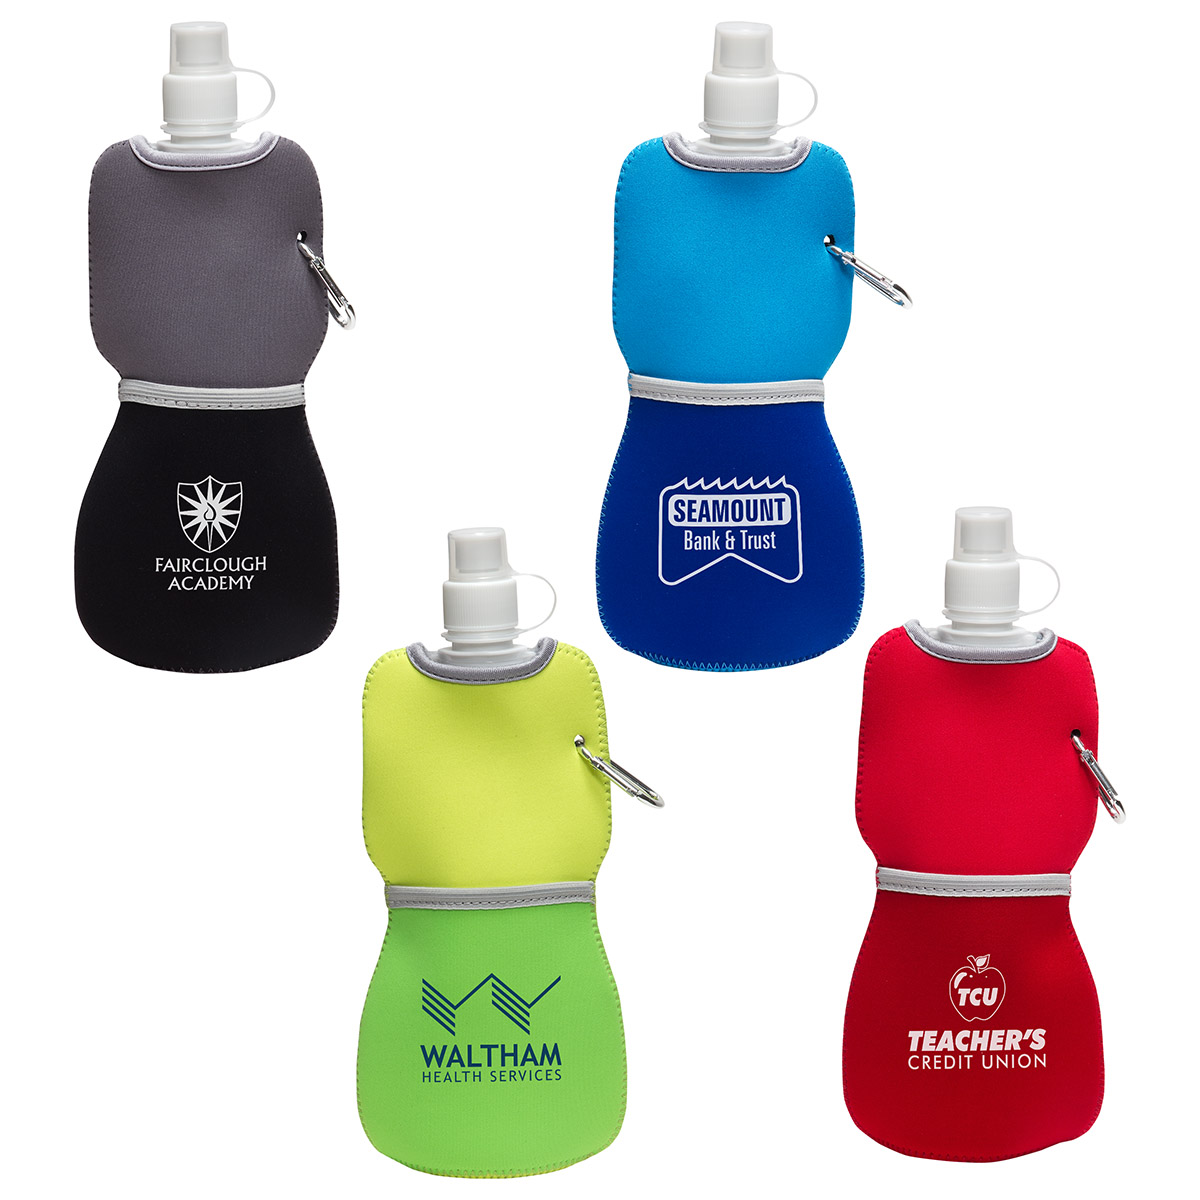 16 Oz. Flex Water Bottle w/ Neoprene Insulator, WKA-FW15 - 1 Colour Imprint